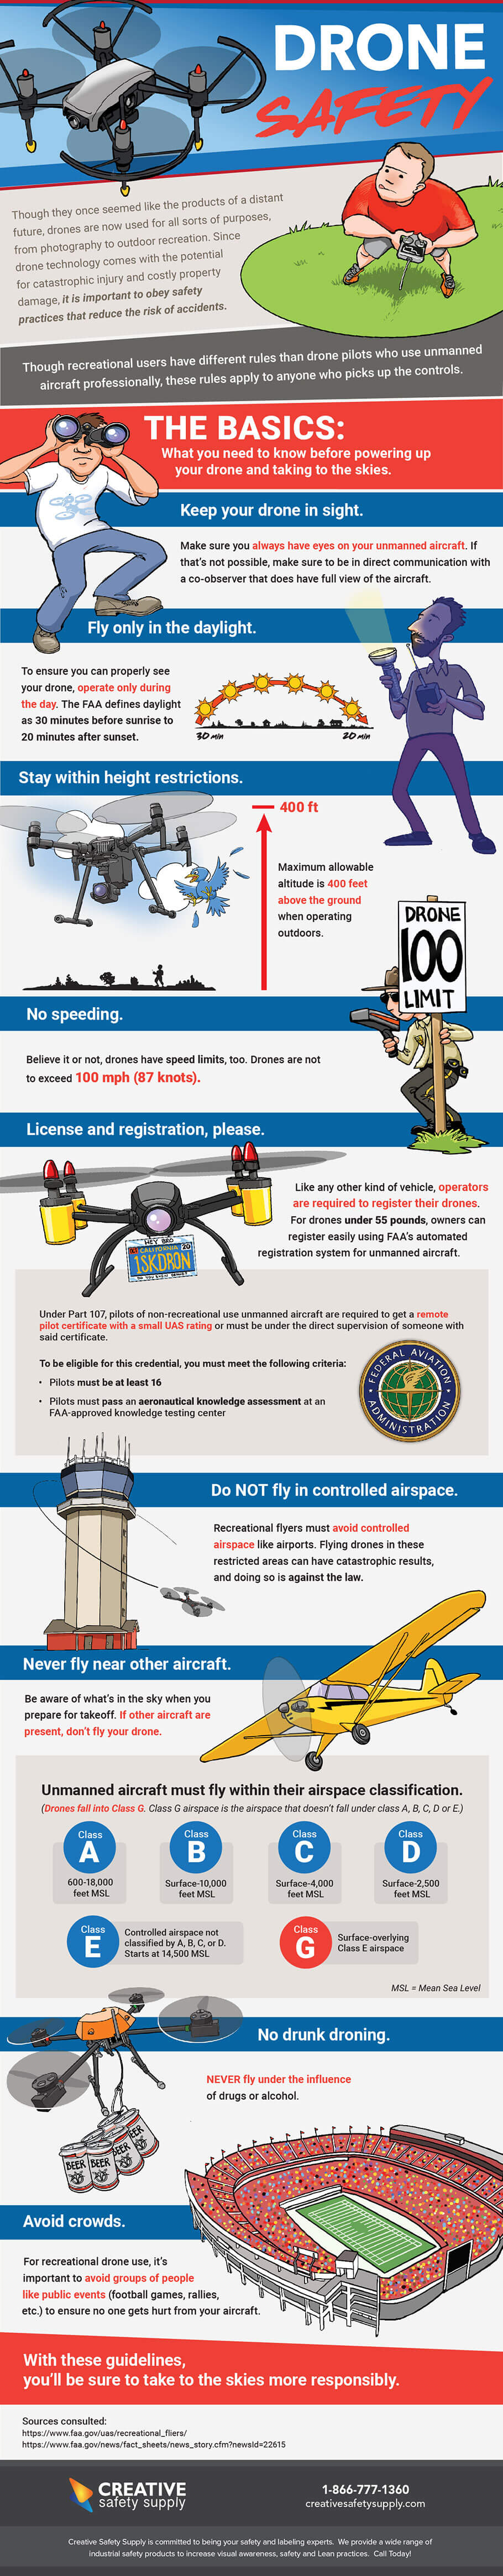 drone safety requirements and rules